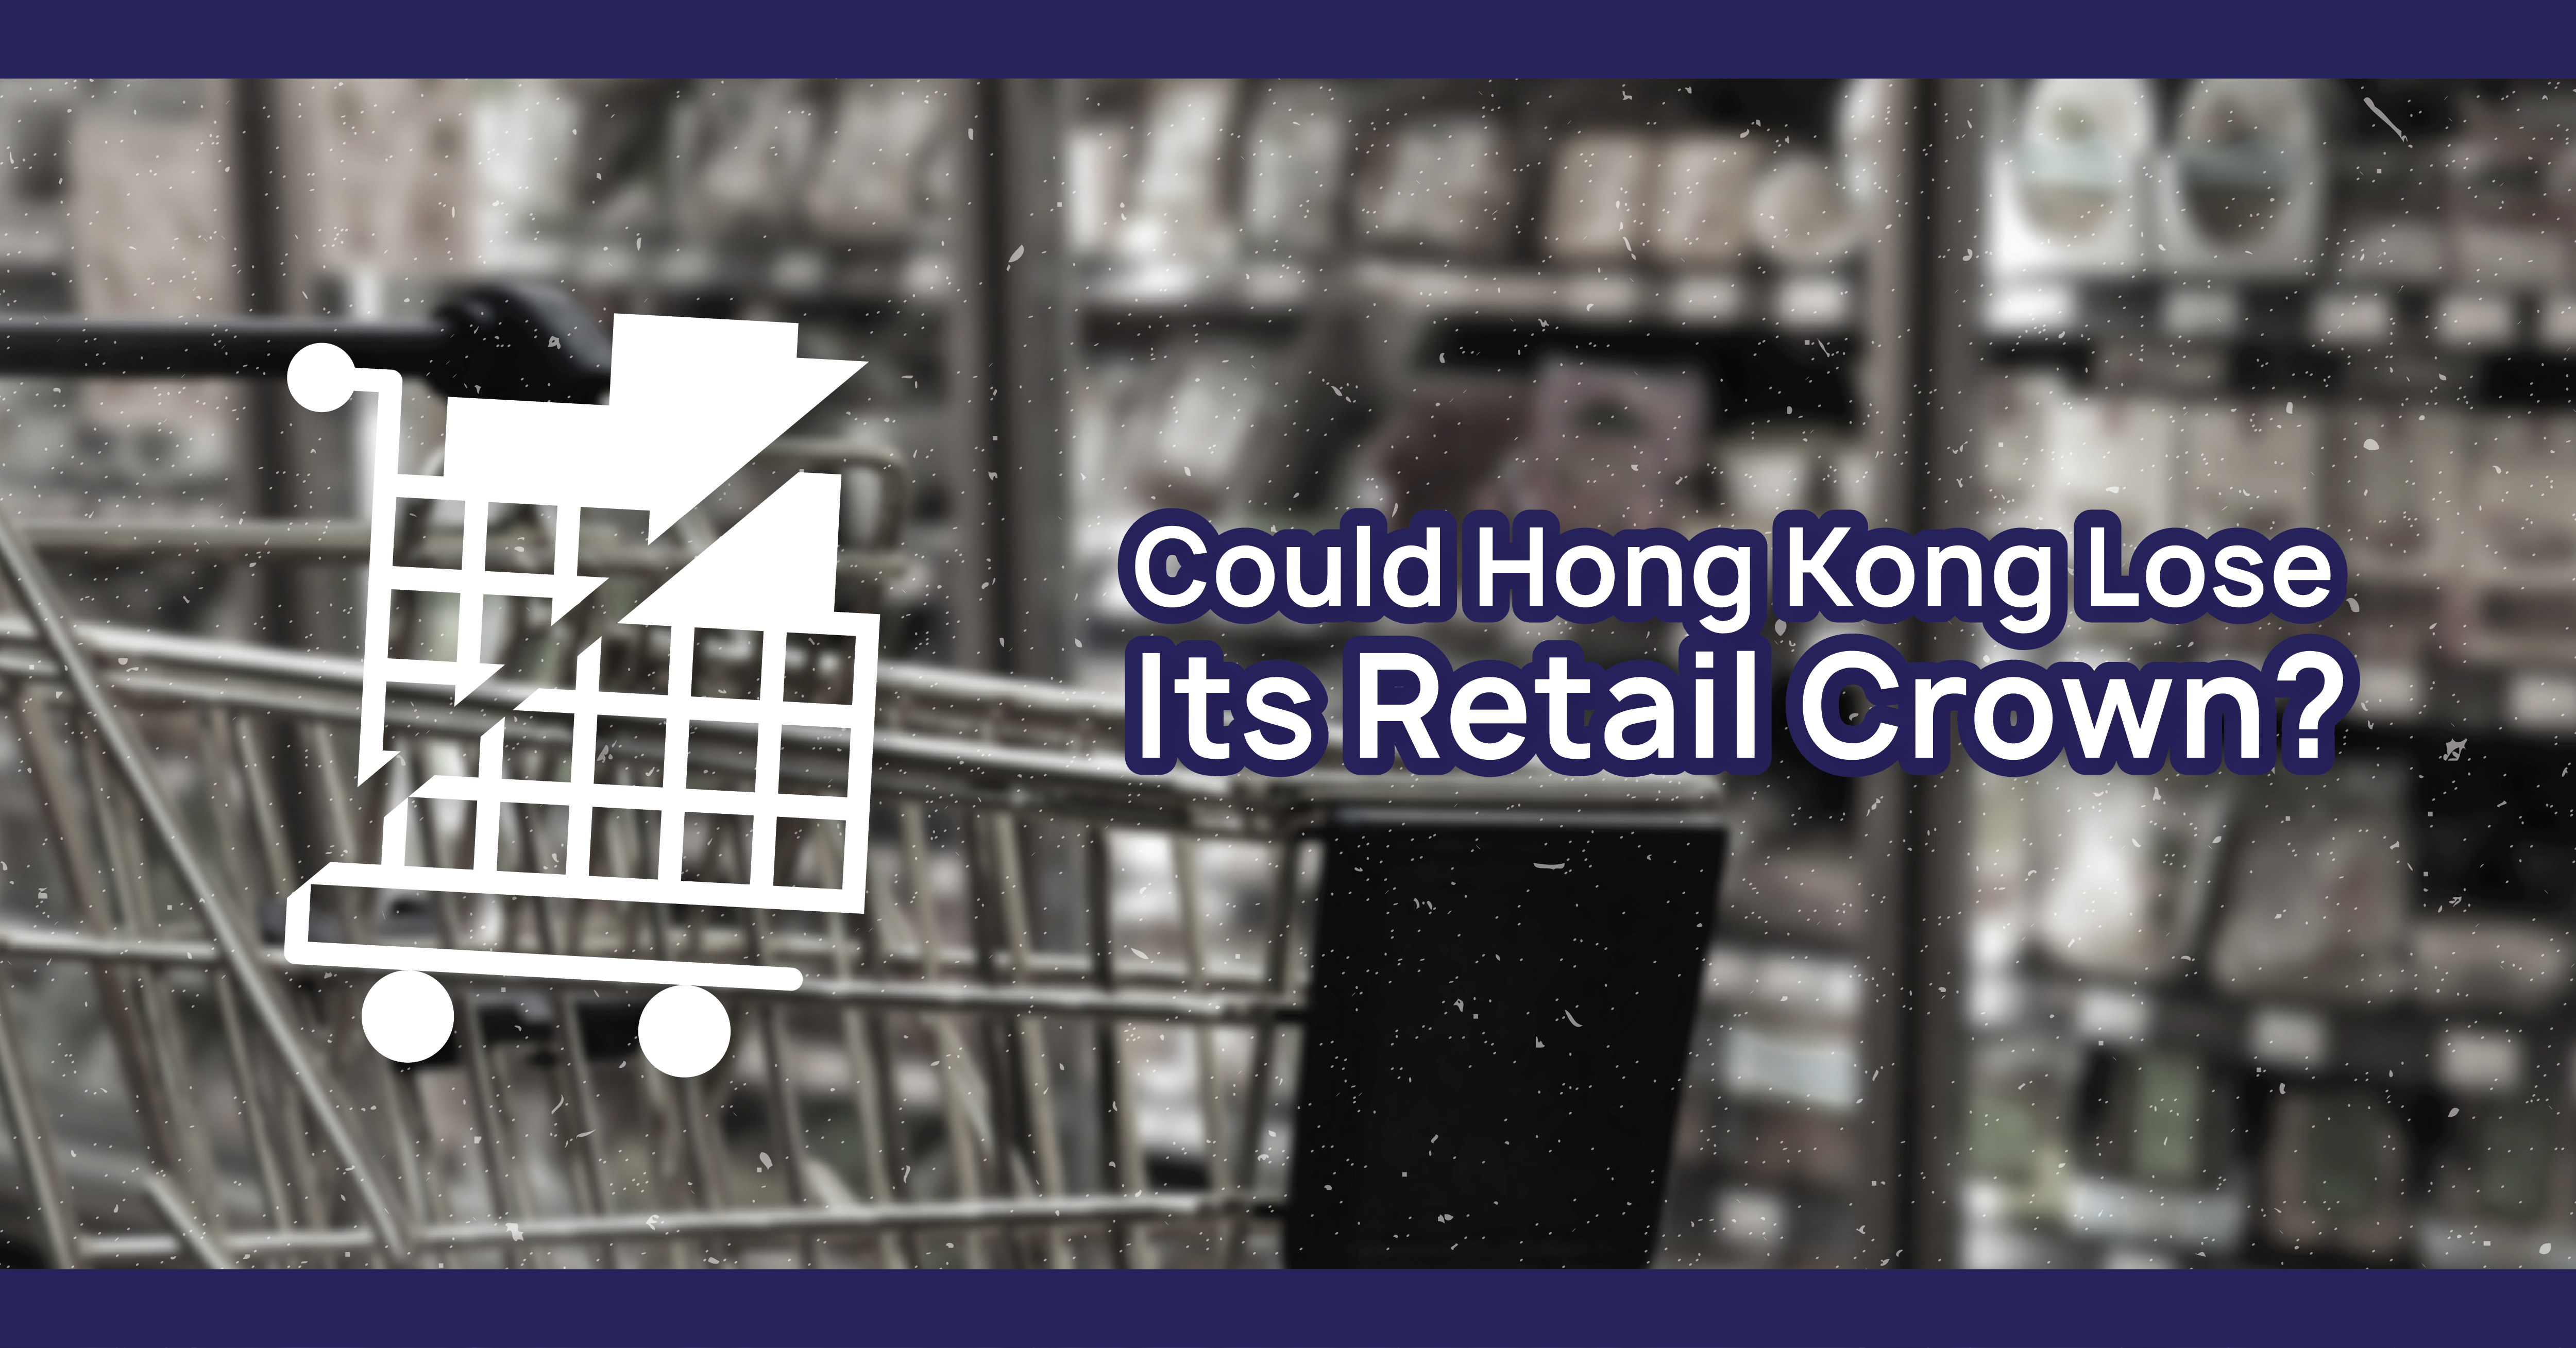 Could Hong Kong Lose Its Retail Crown?